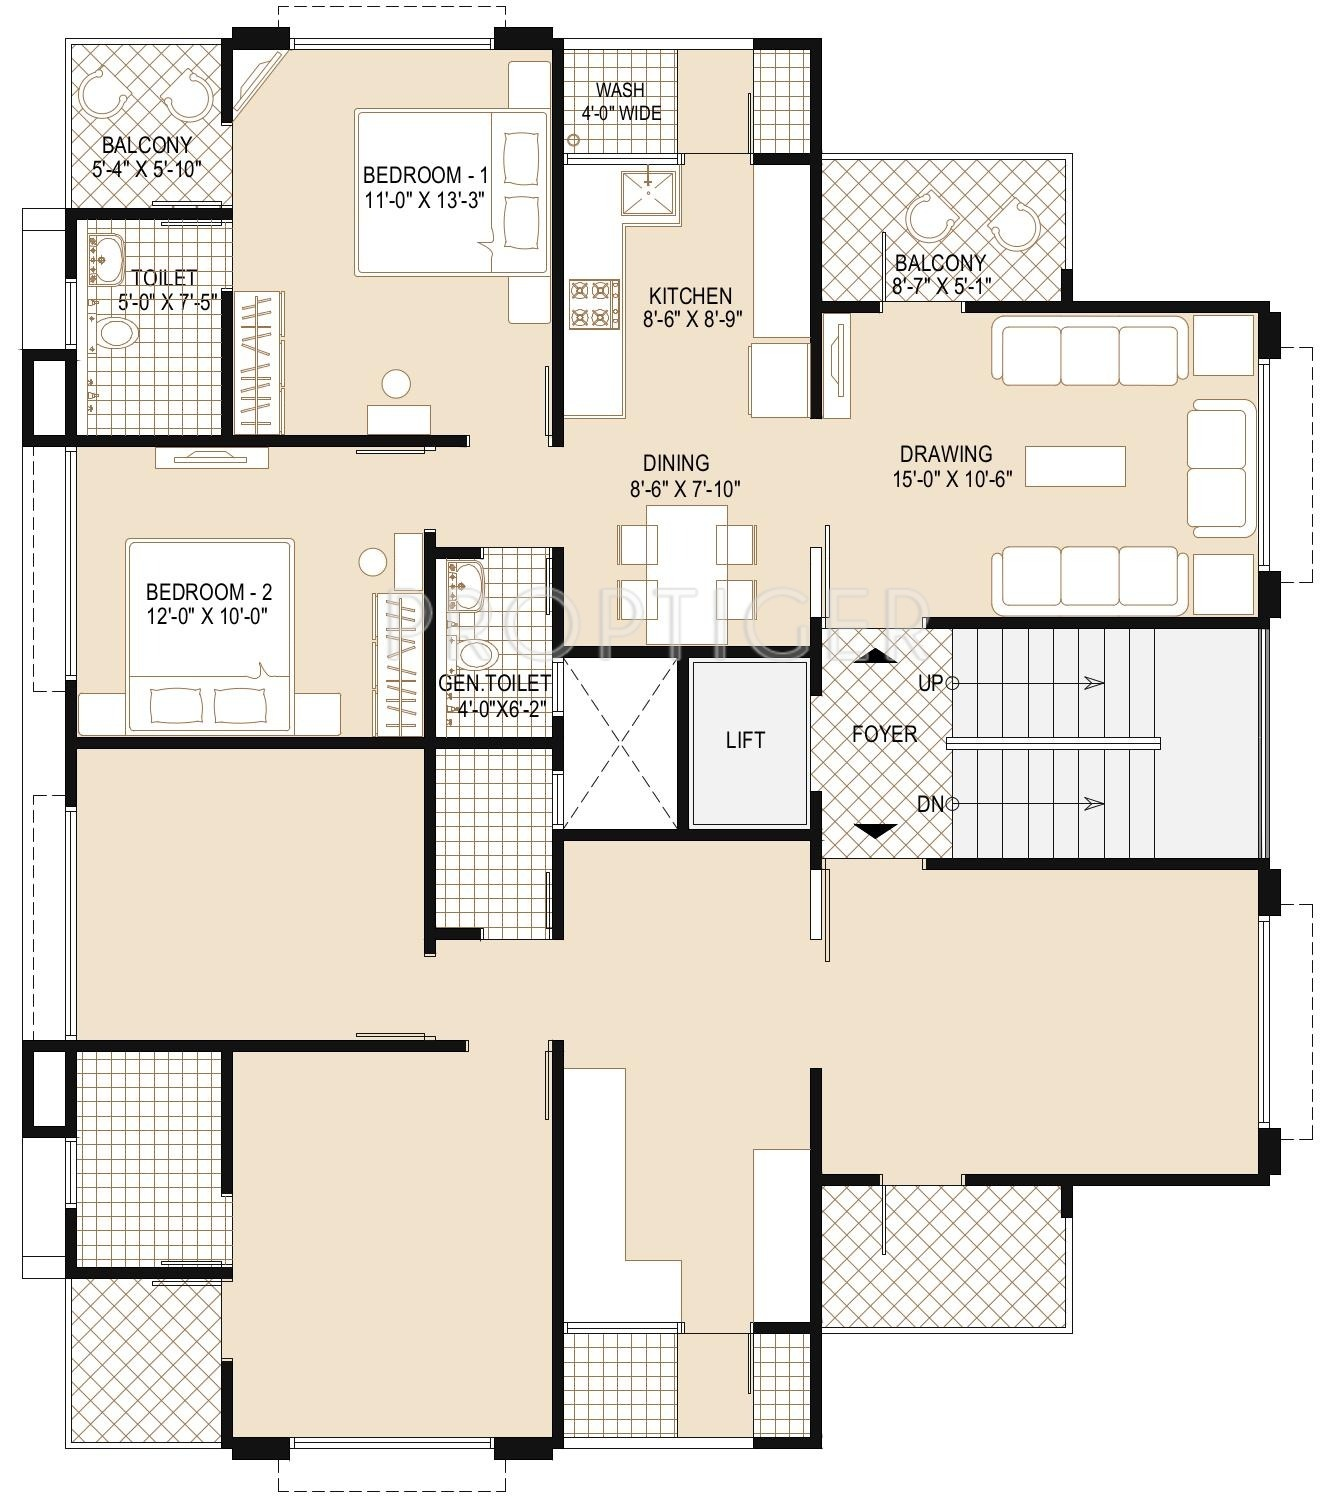 2 Or 3 Bhk Flat Interior Designing Cost In Kolkata: 820 Sq Ft 2 BHK 2T Apartment For Sale In Galaxy Group